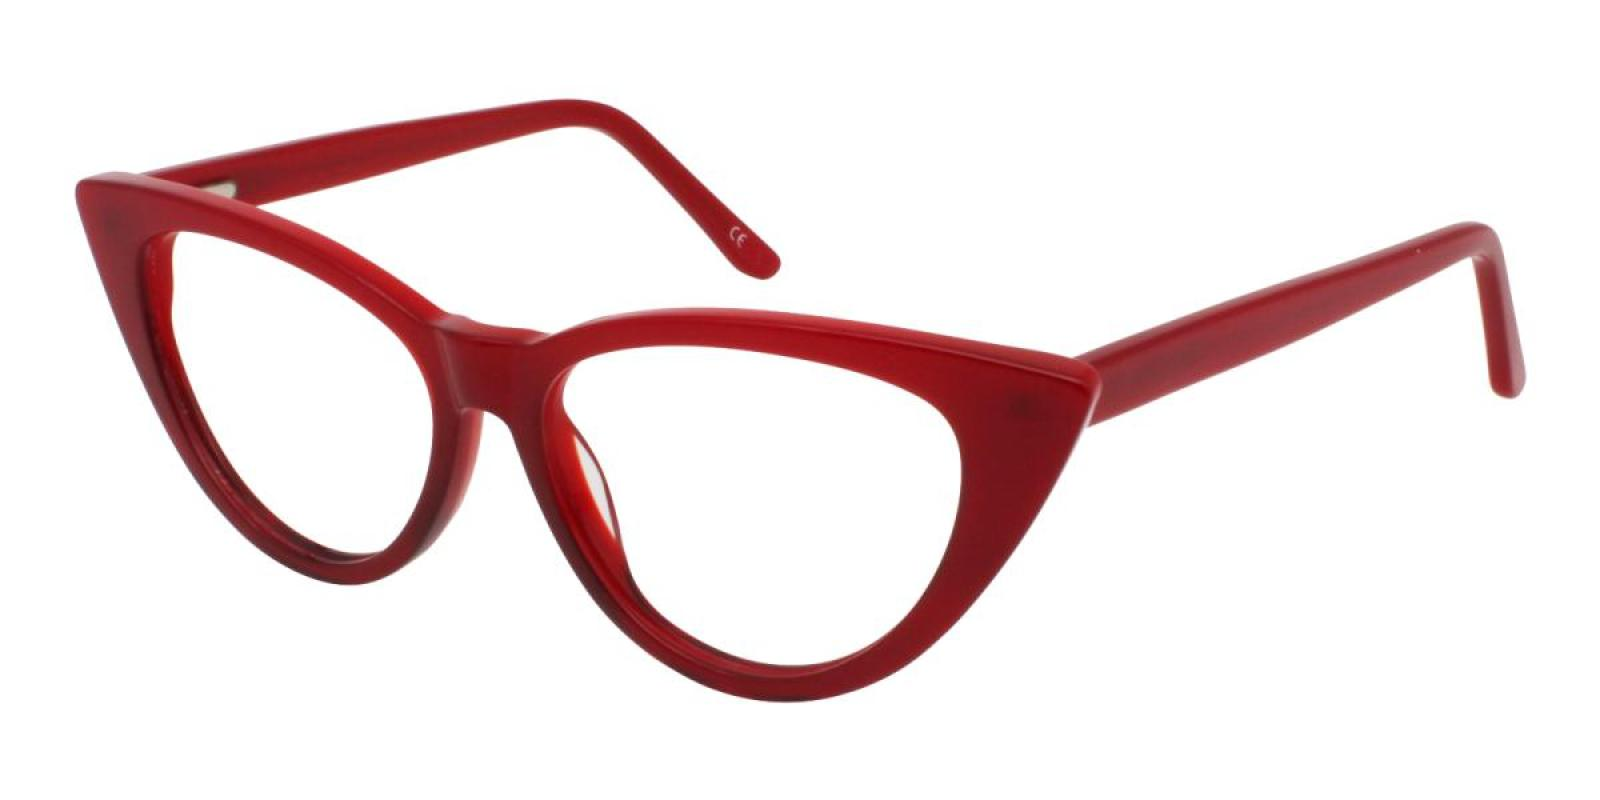 Charm-Red-Cat-Acetate-Eyeglasses-additional1